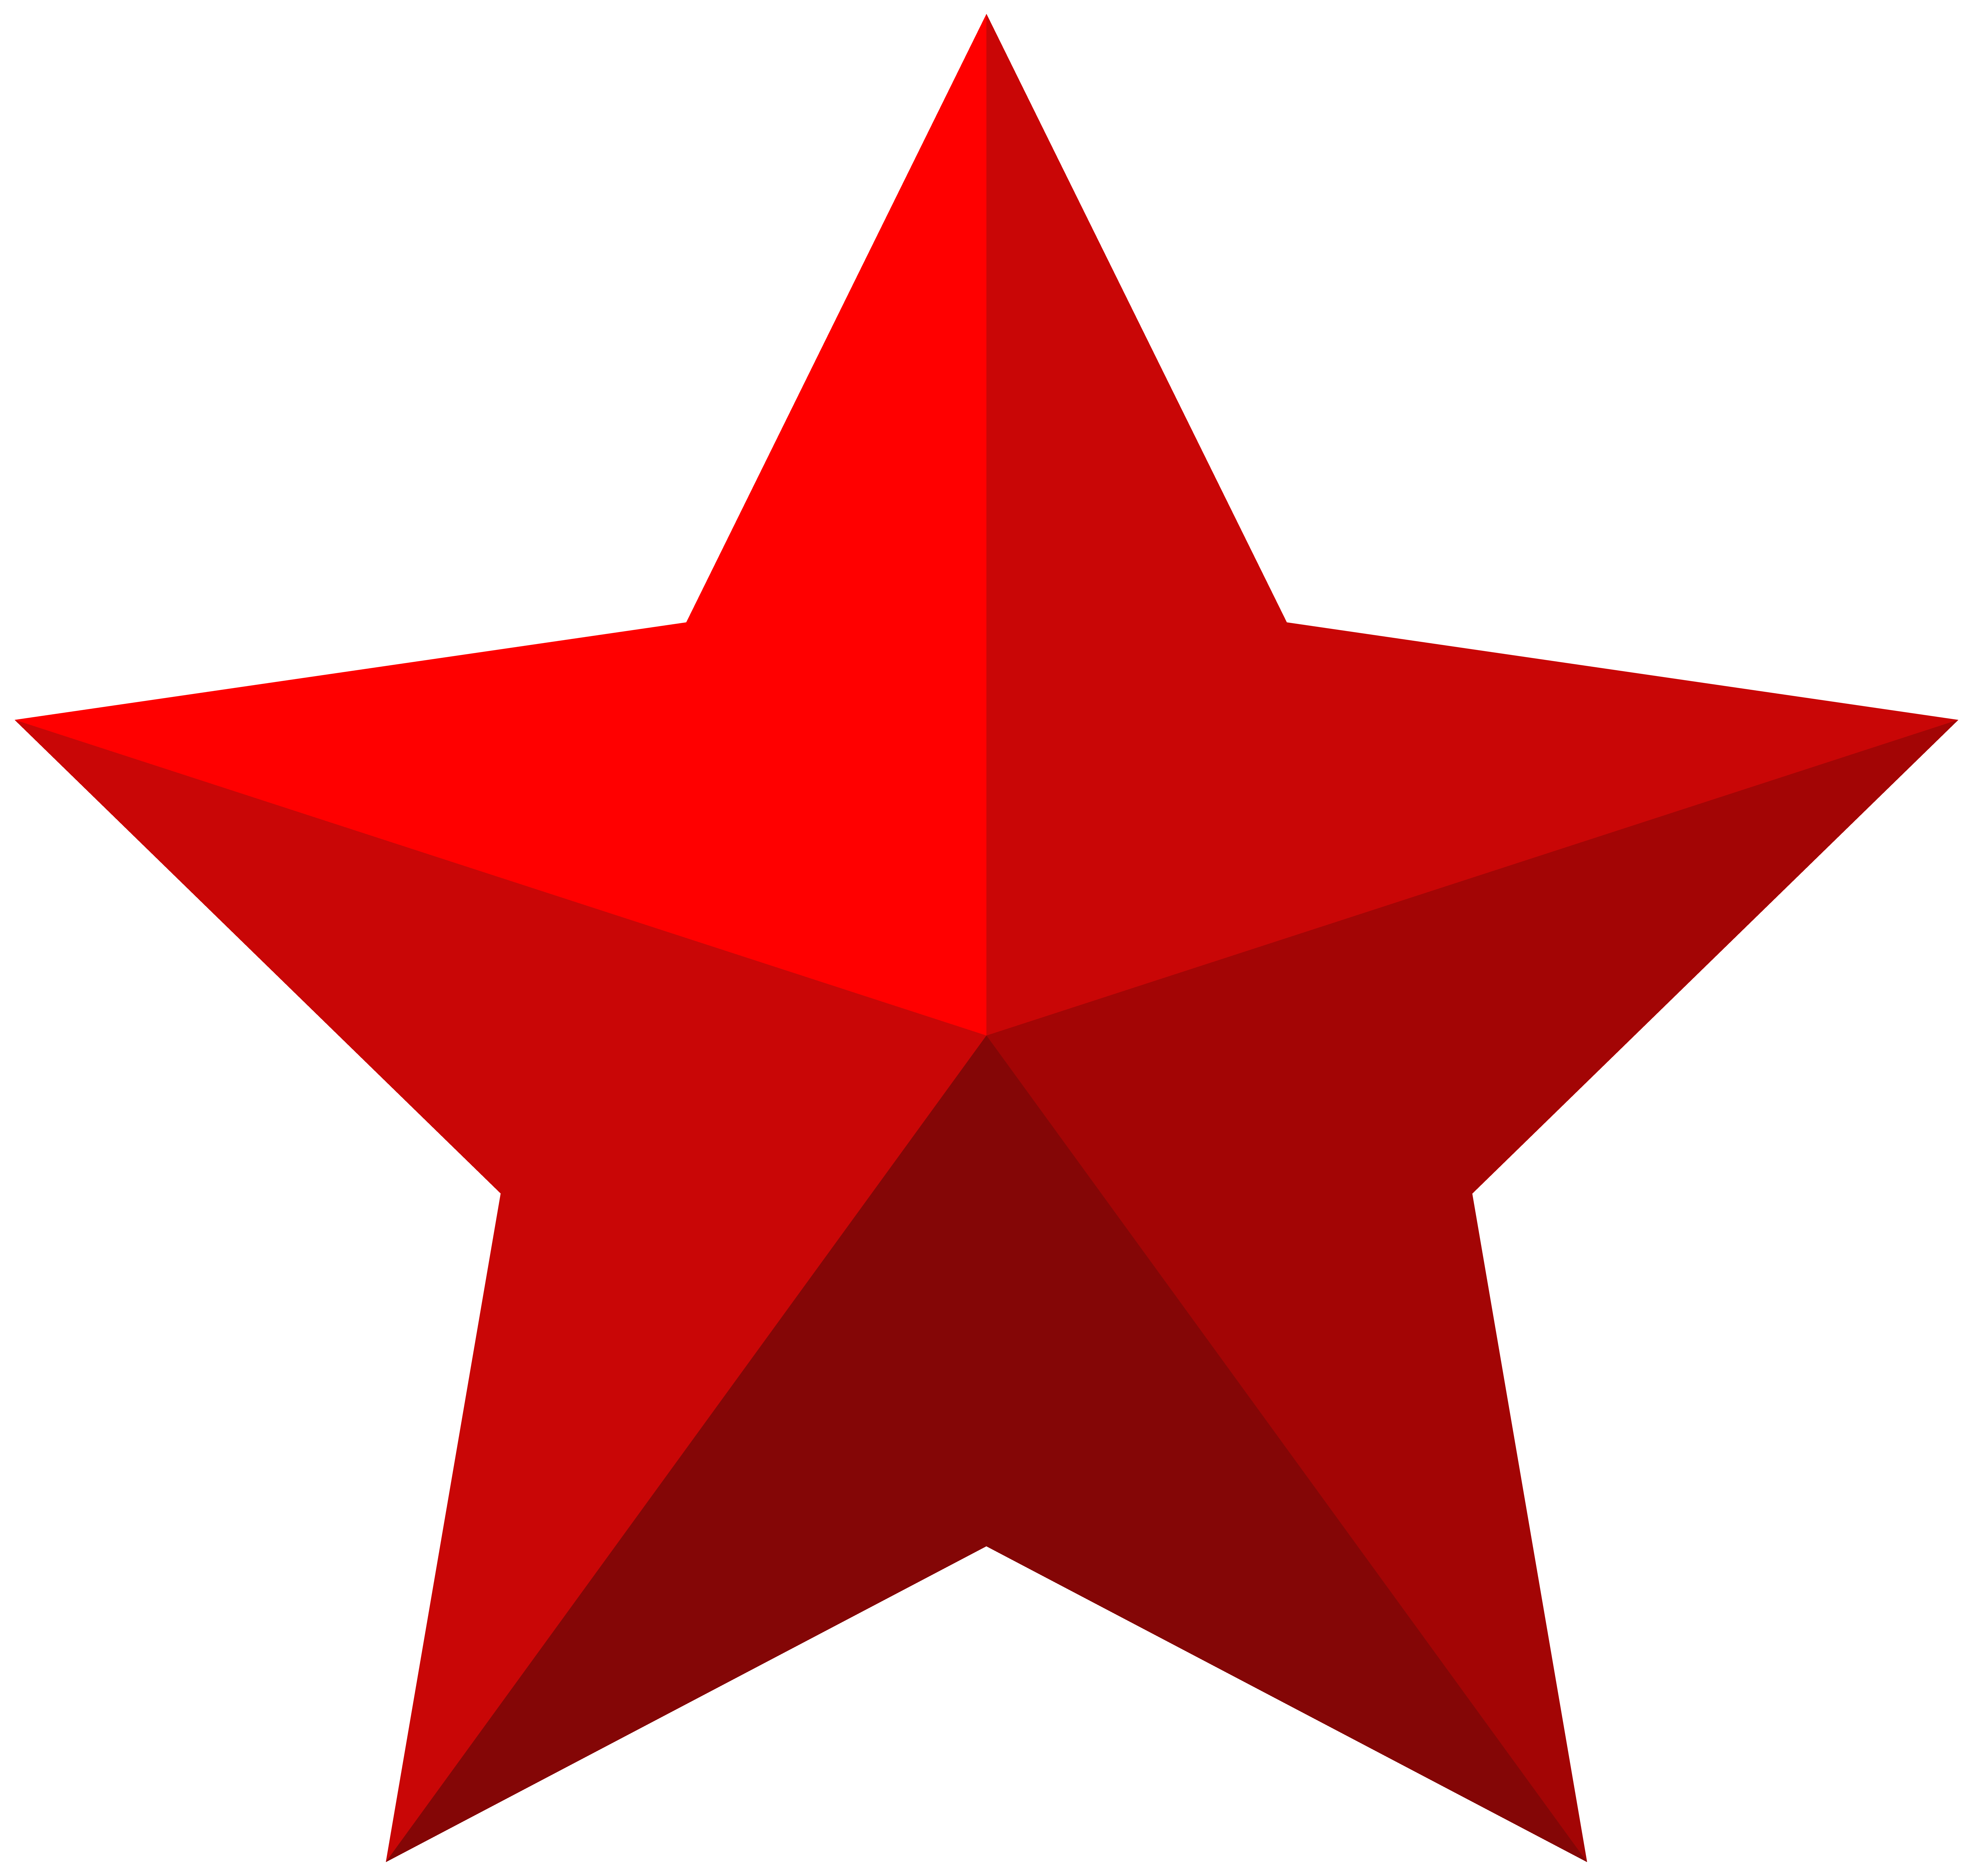 Star PNG Image File